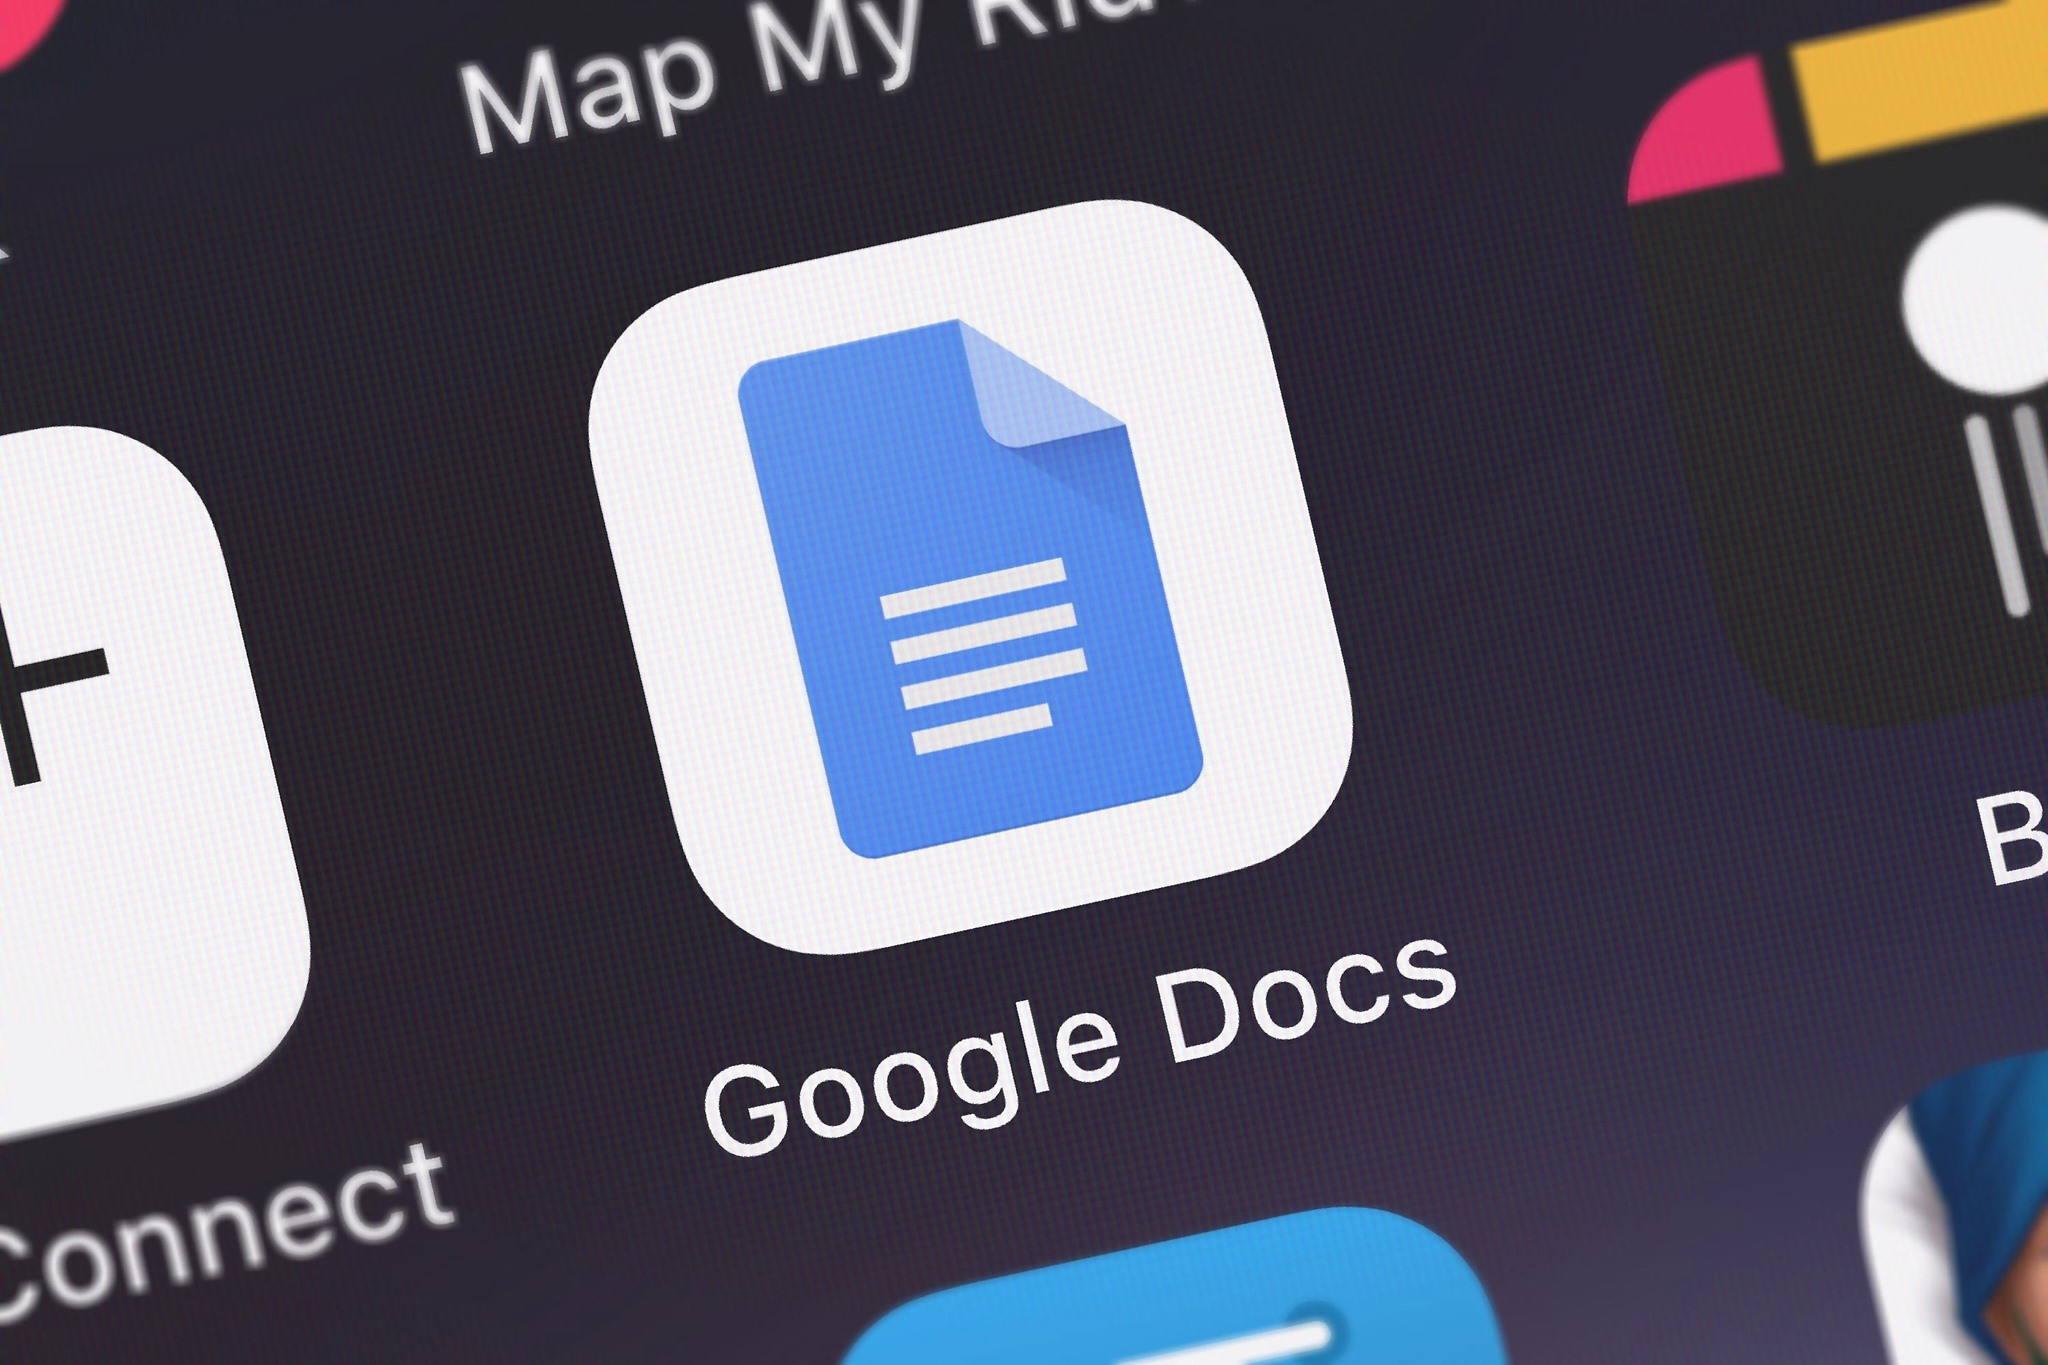 Using Google Docs more than ever these days? We know the feeling. Check out these tips and tricks to work smarter, not harder. LINK: www.tomtop.com #TechTuesday...